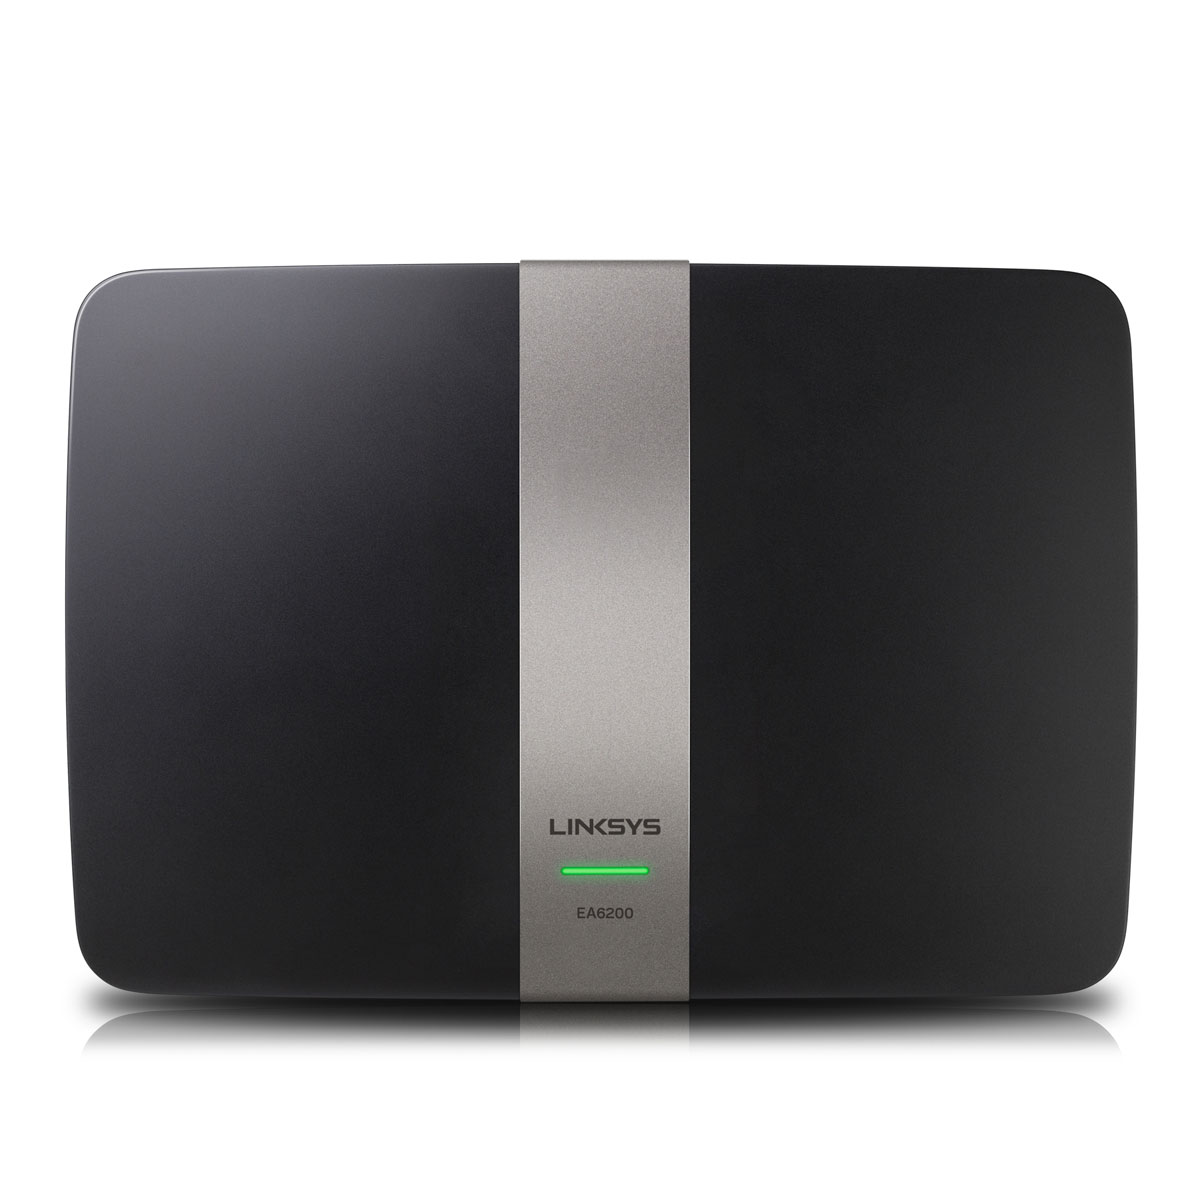 linksys ea6200 modem routeur linksys sur. Black Bedroom Furniture Sets. Home Design Ideas